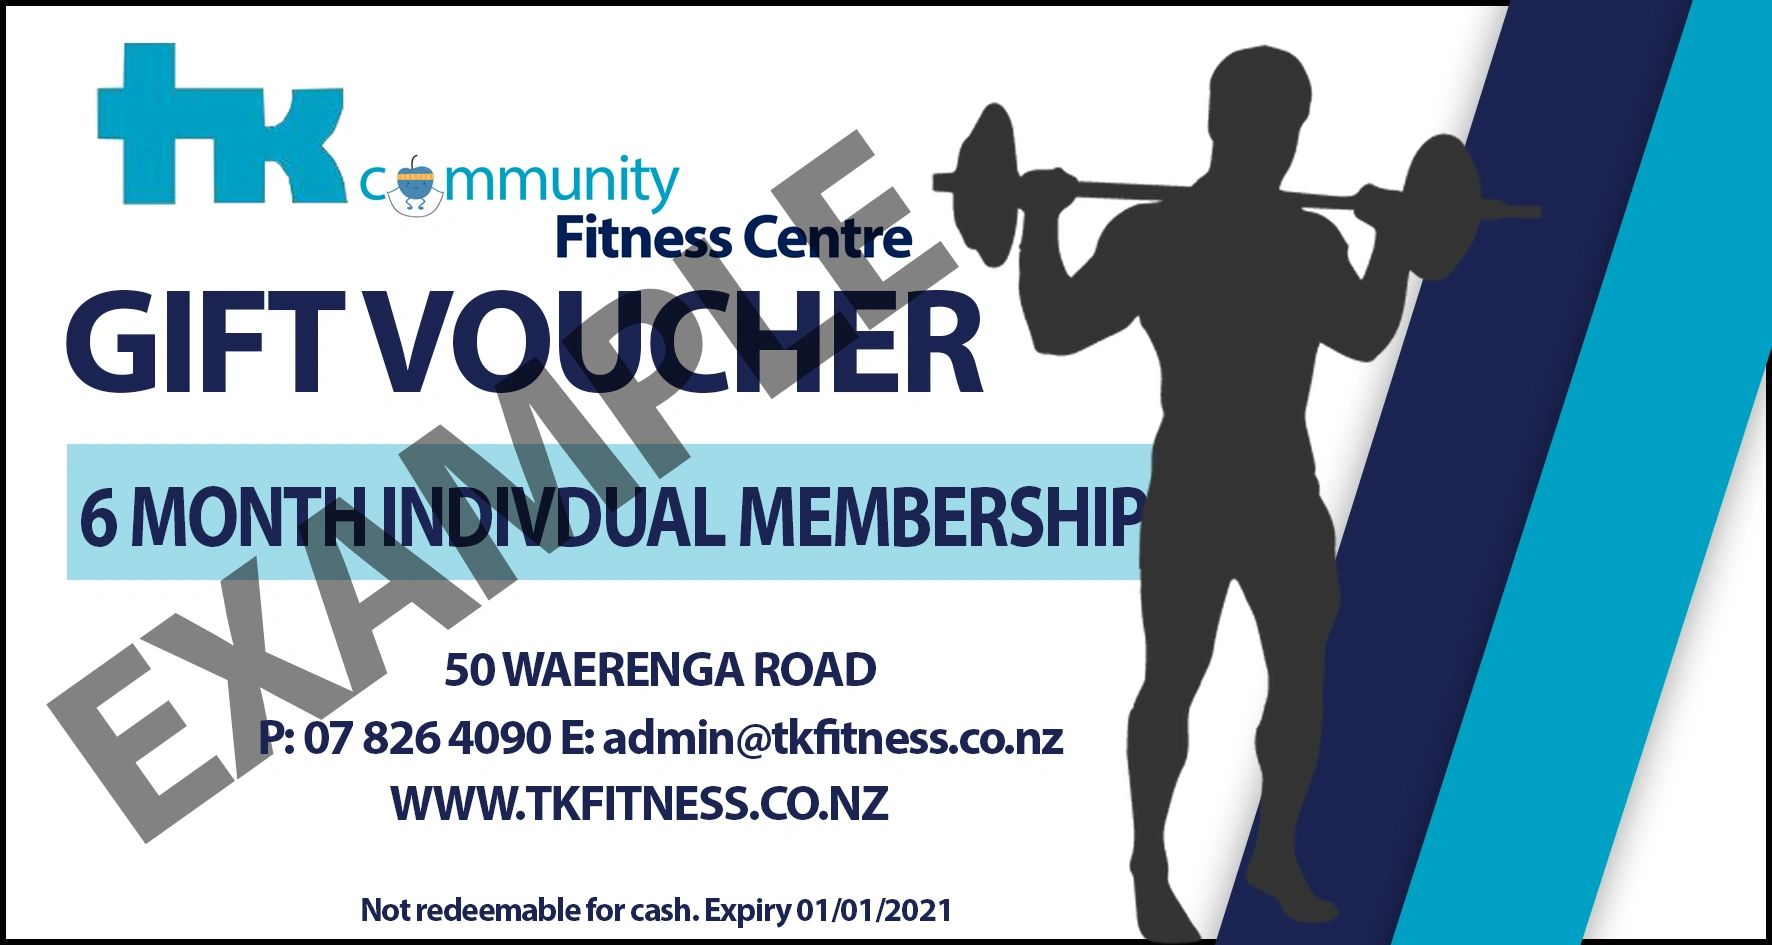 gym membership voucher gift